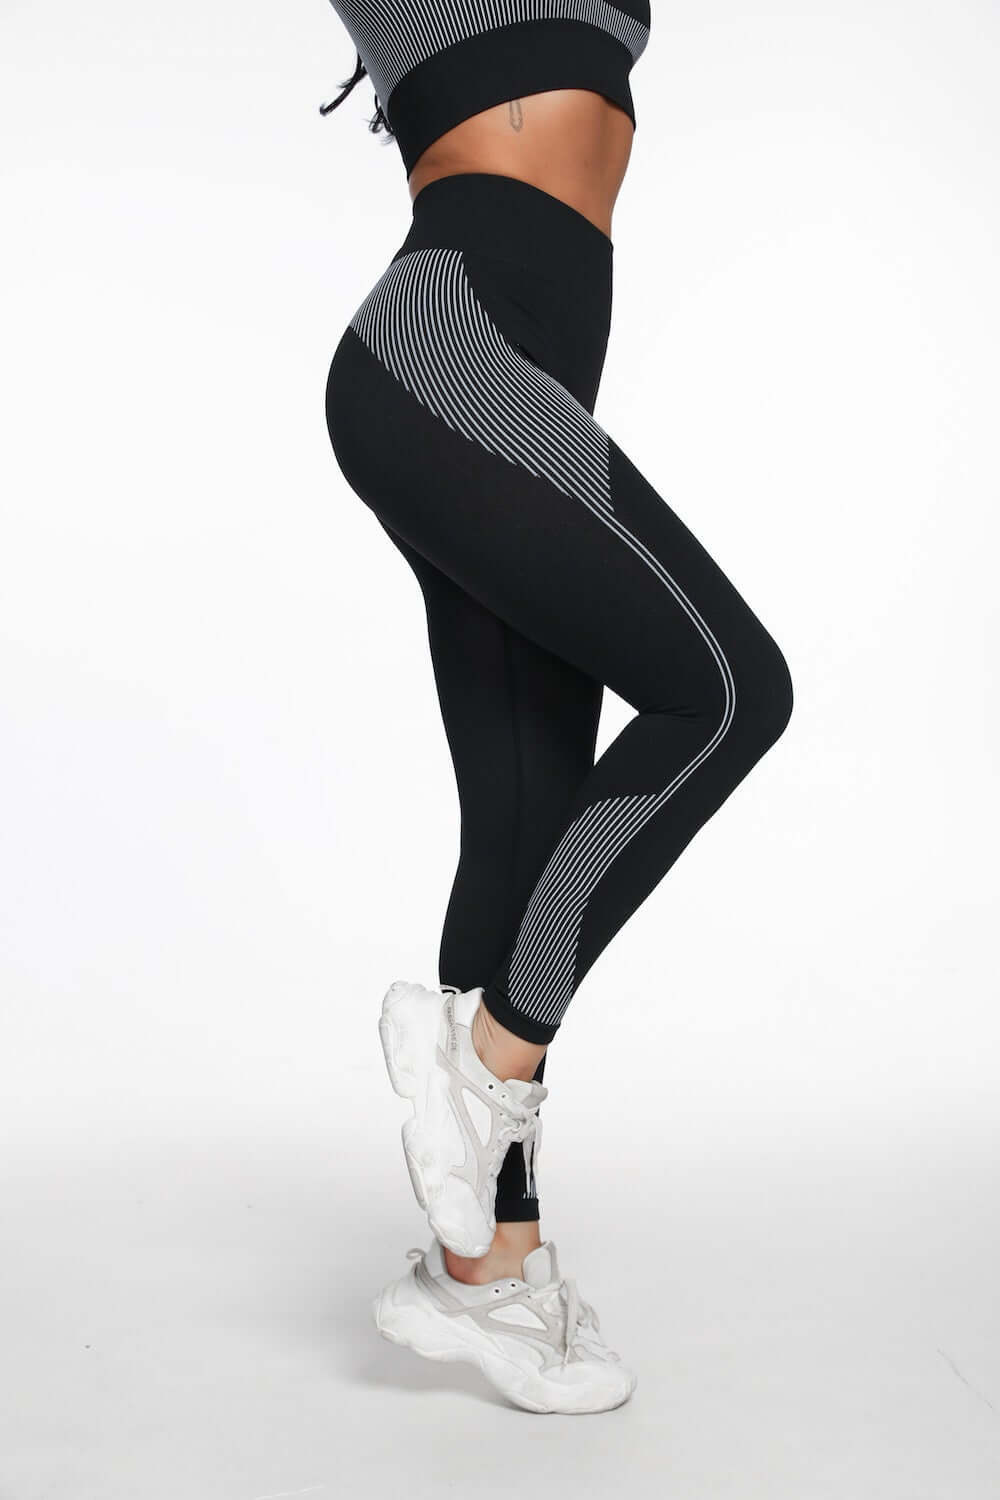 Astoria ENERGY Full Length Legging - Black/White